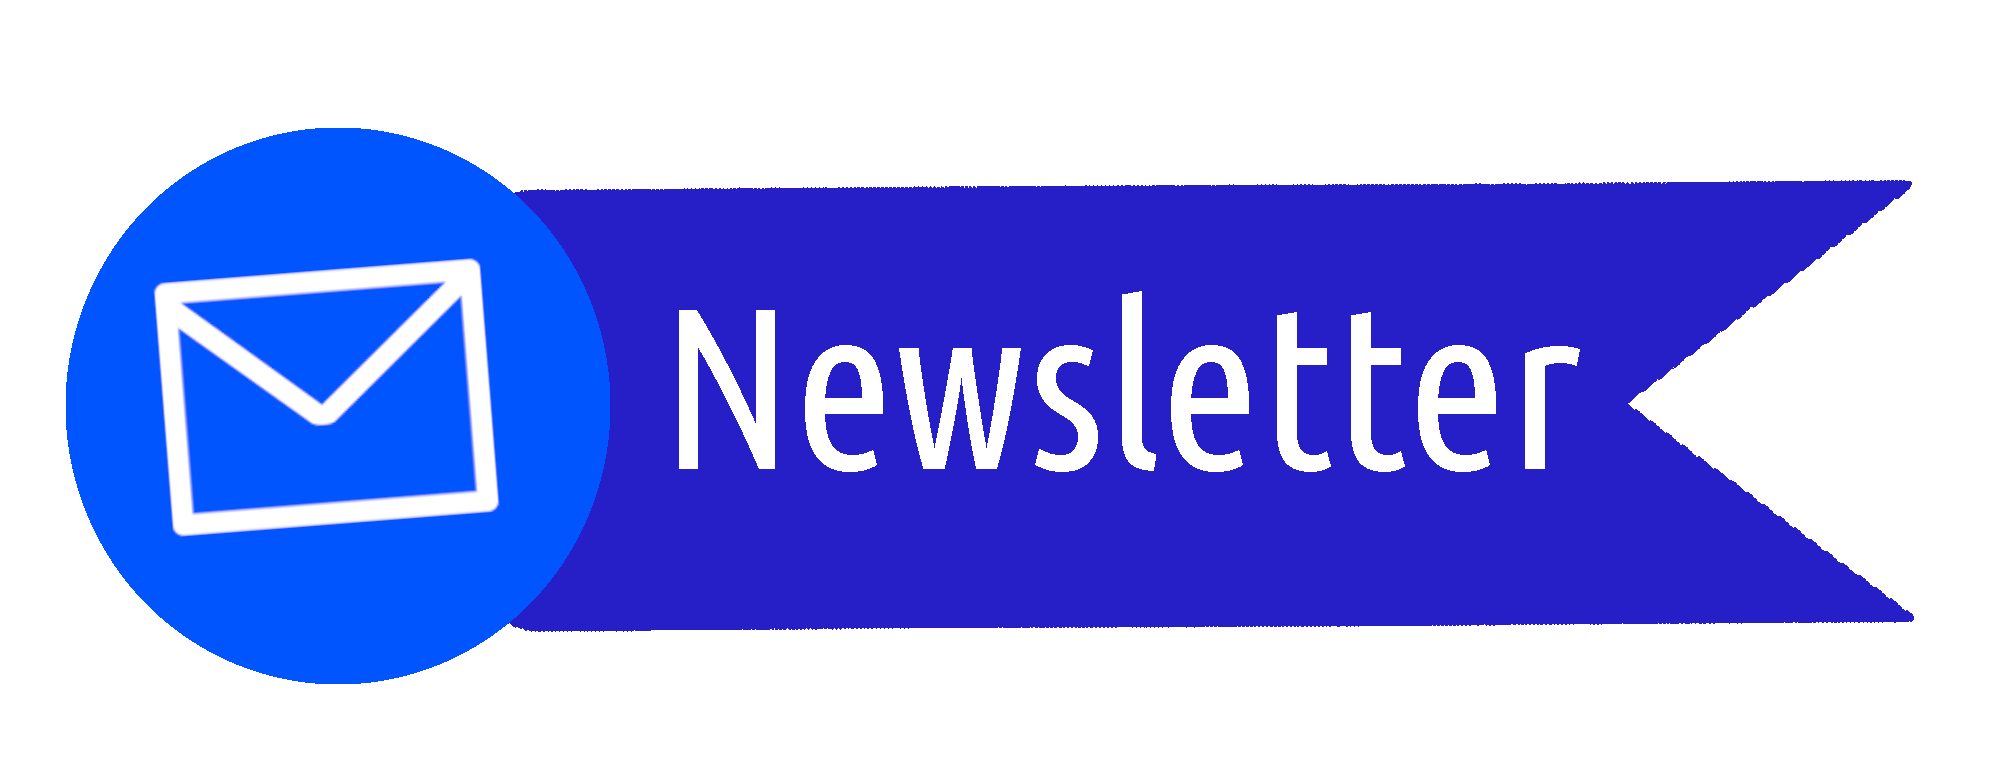 icone-farmacie-newsletter.png